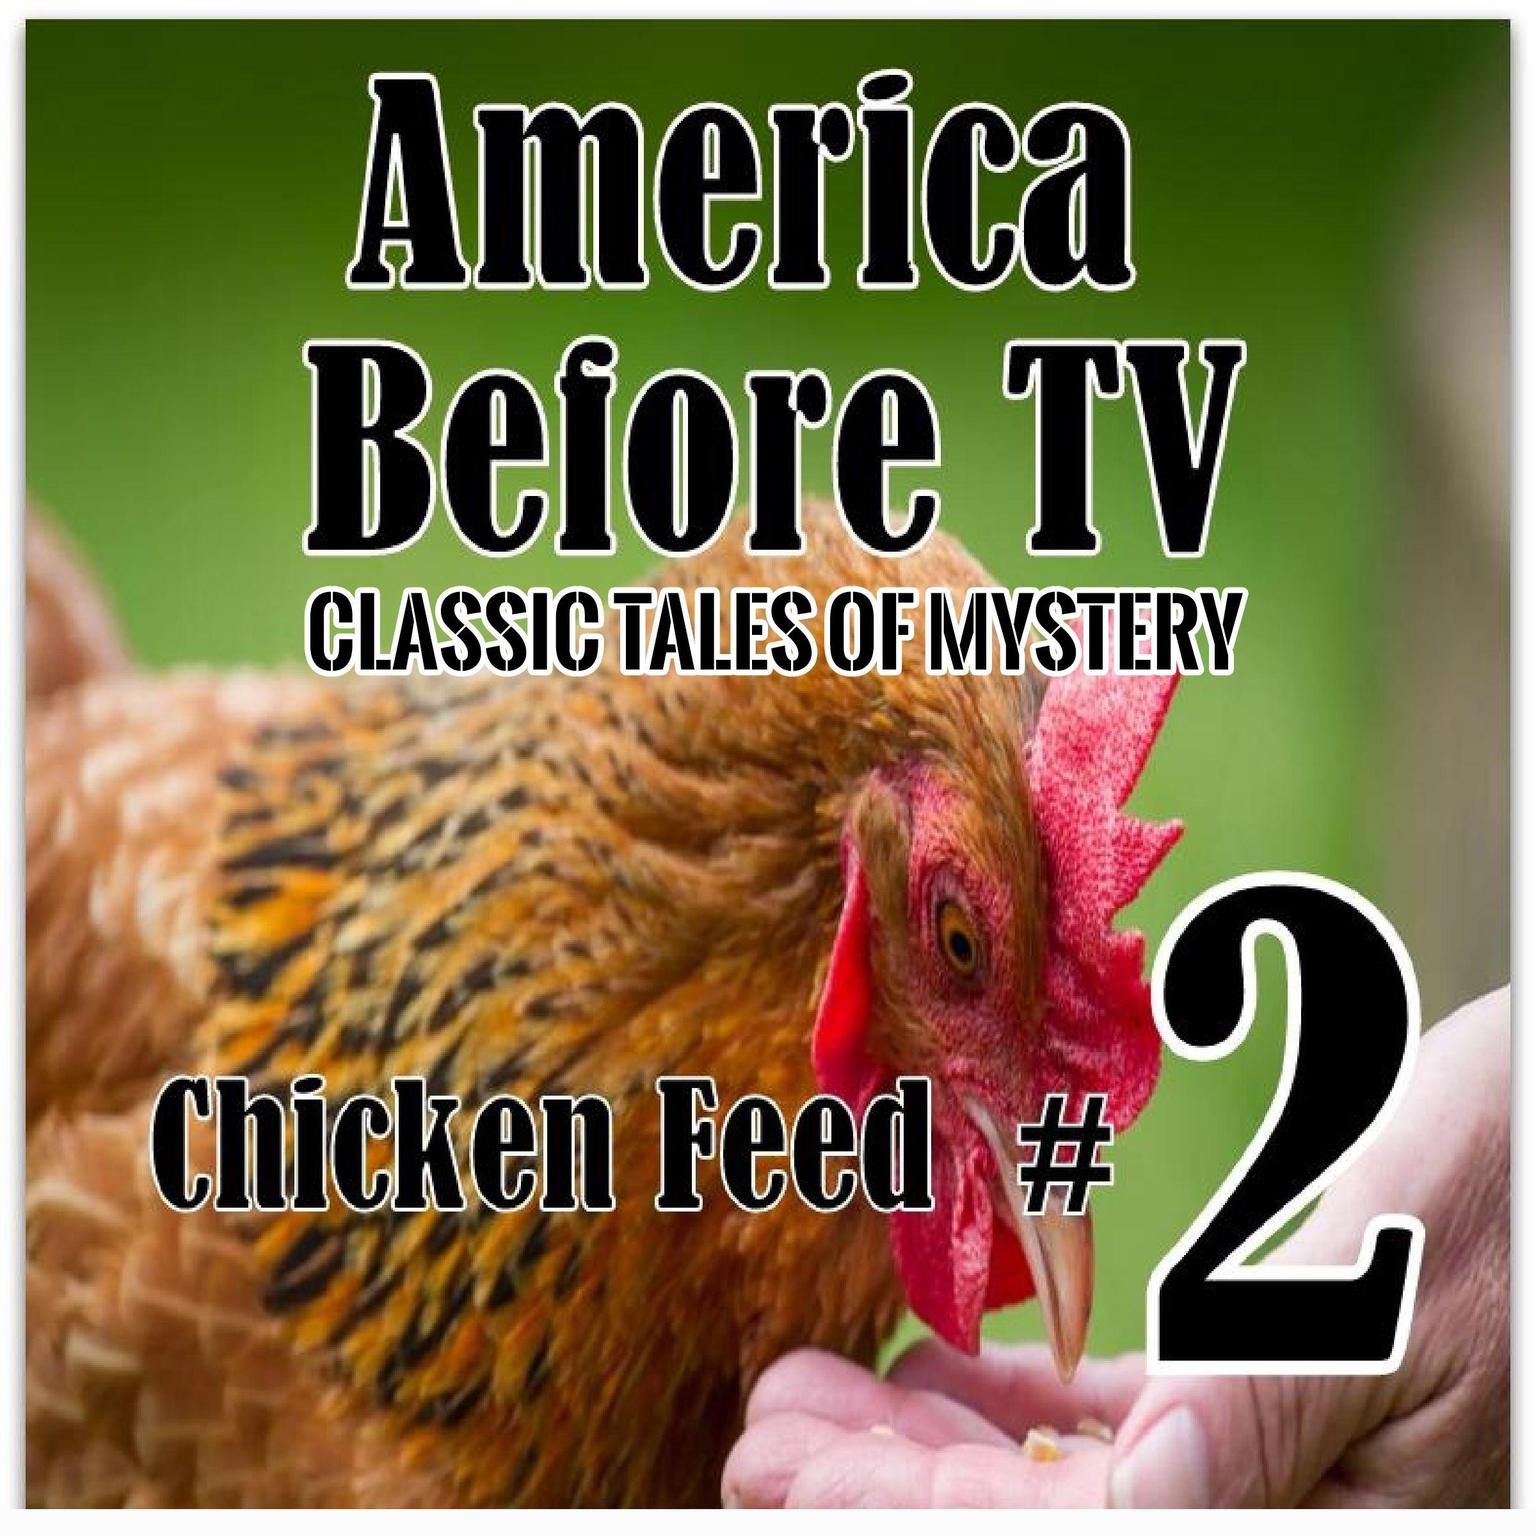 Printable America Before TV - Chicken Feed  #2 Audiobook Cover Art